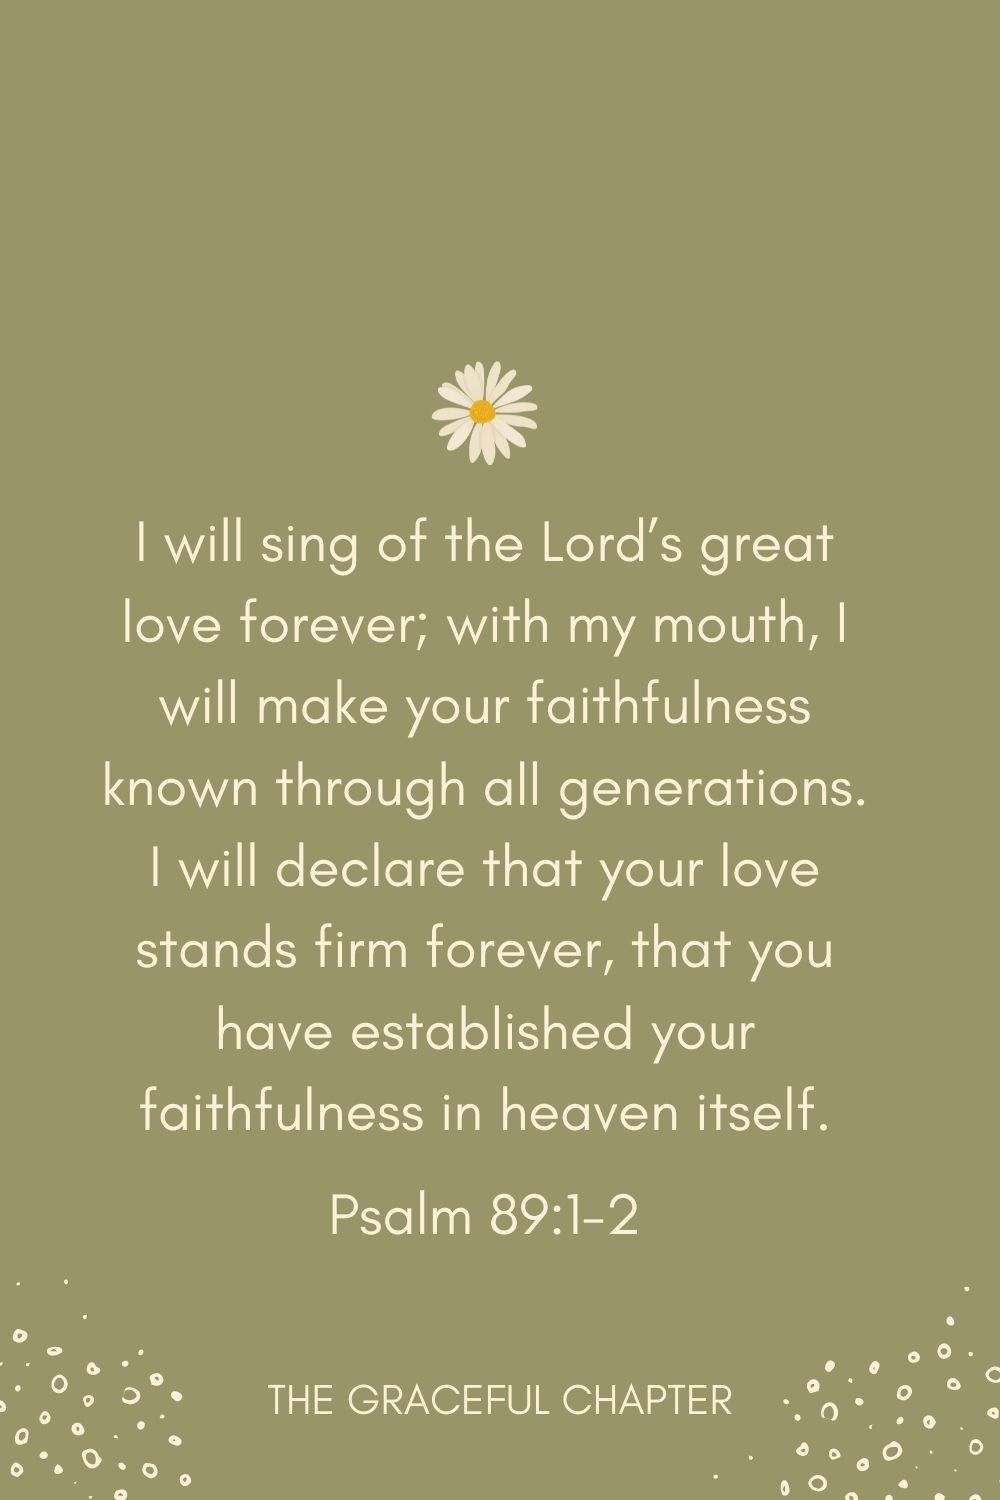 I will sing of the Lord's great love forever; with my mouth, I will make your faithfulness known through all generations. I will declare that your love stands firm forever, that you have established your faithfulness in heaven itself. Psalm 89:1-2